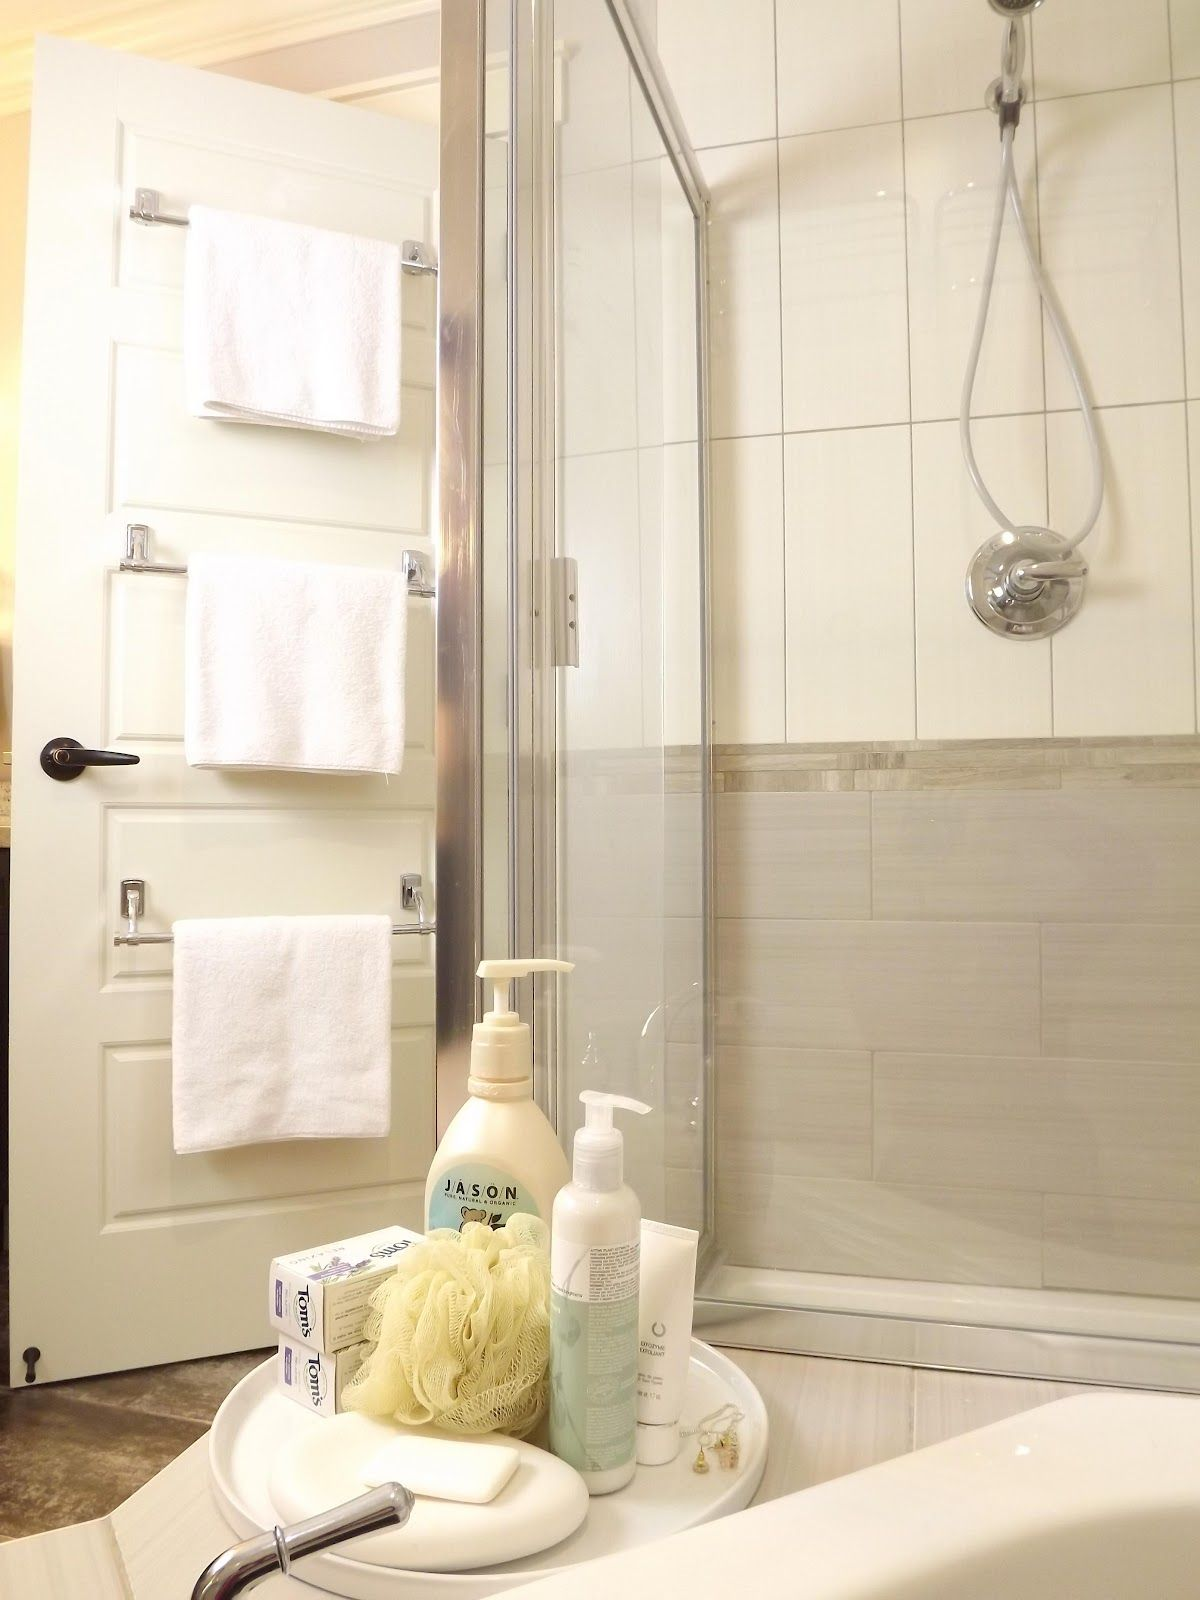 Attach Multiple Towel Bars To The Back Of The Bathroom Door For - Towel holders for small bathrooms for small bathroom ideas